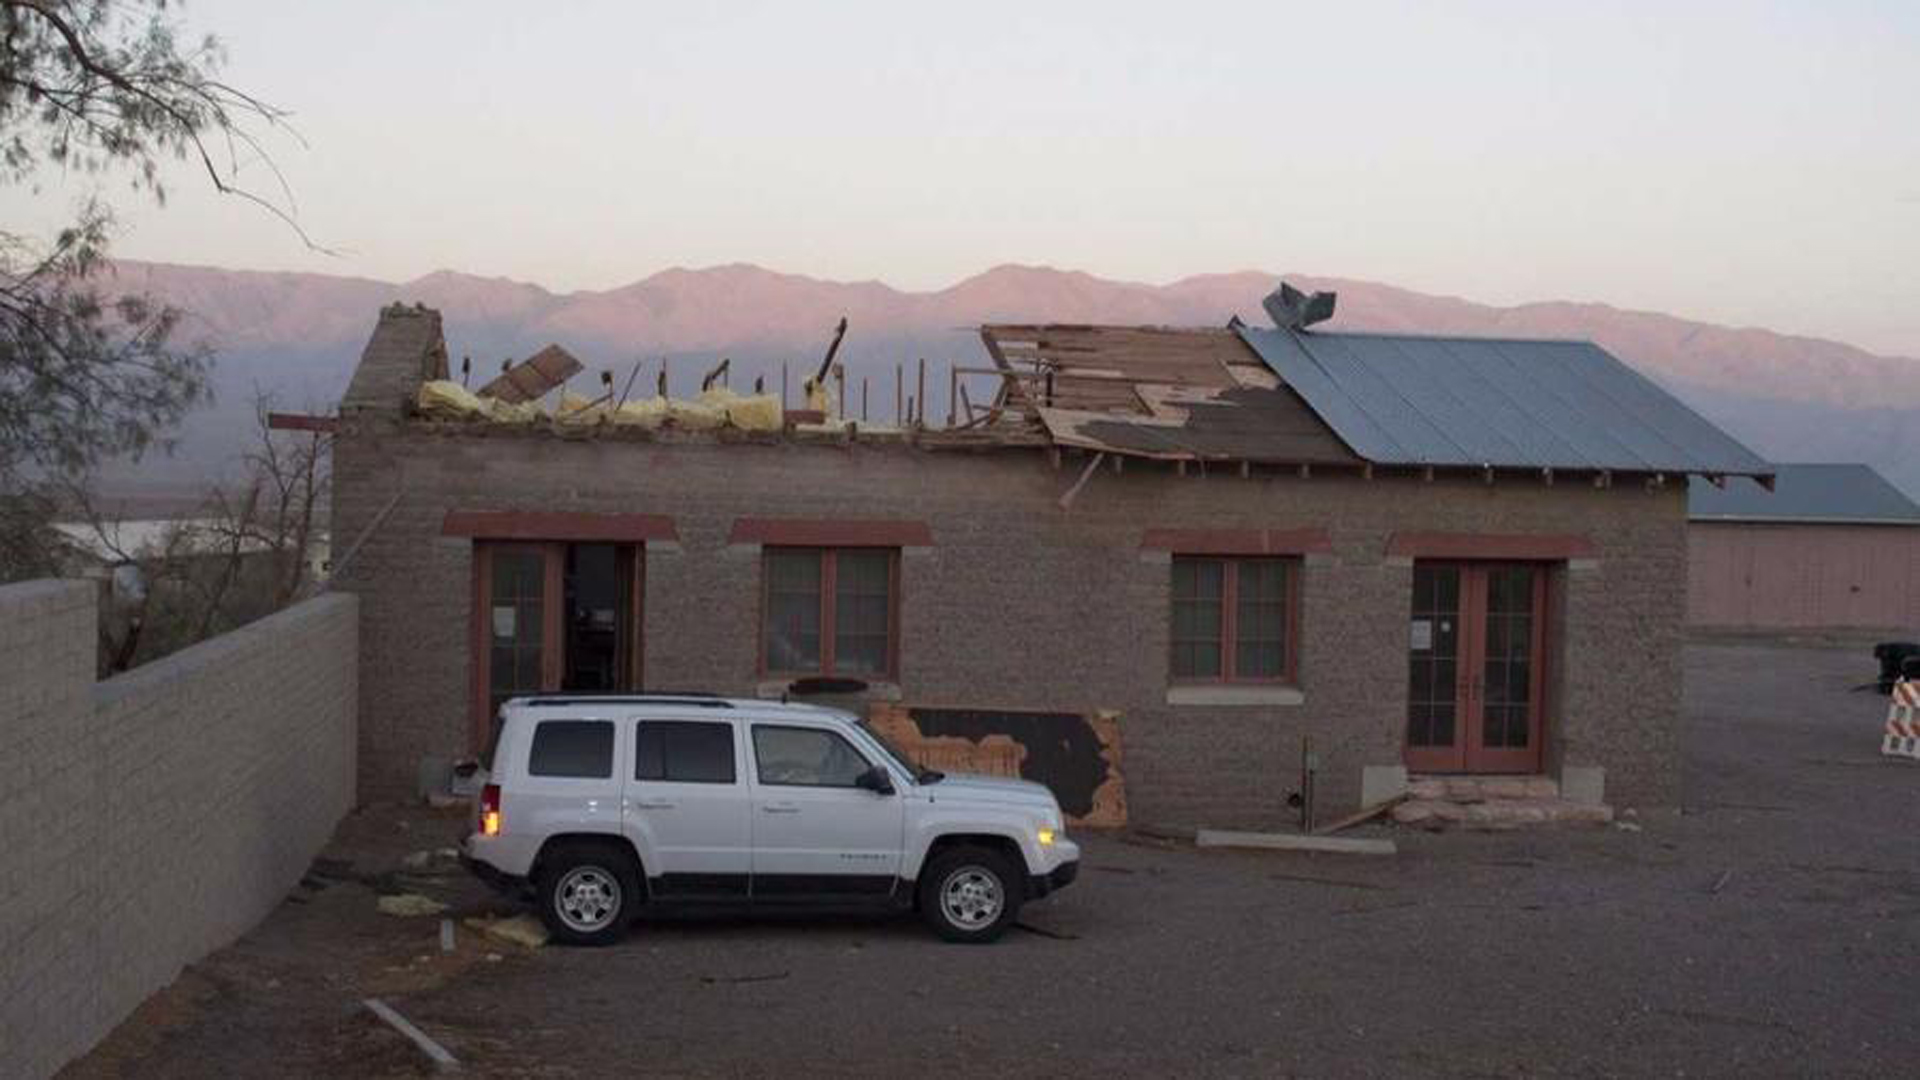 A powerful microburst swept through Death Valley National Park, sent the roof of a historic building flying. (Credit: Alexandria Boyer / National Park Service)